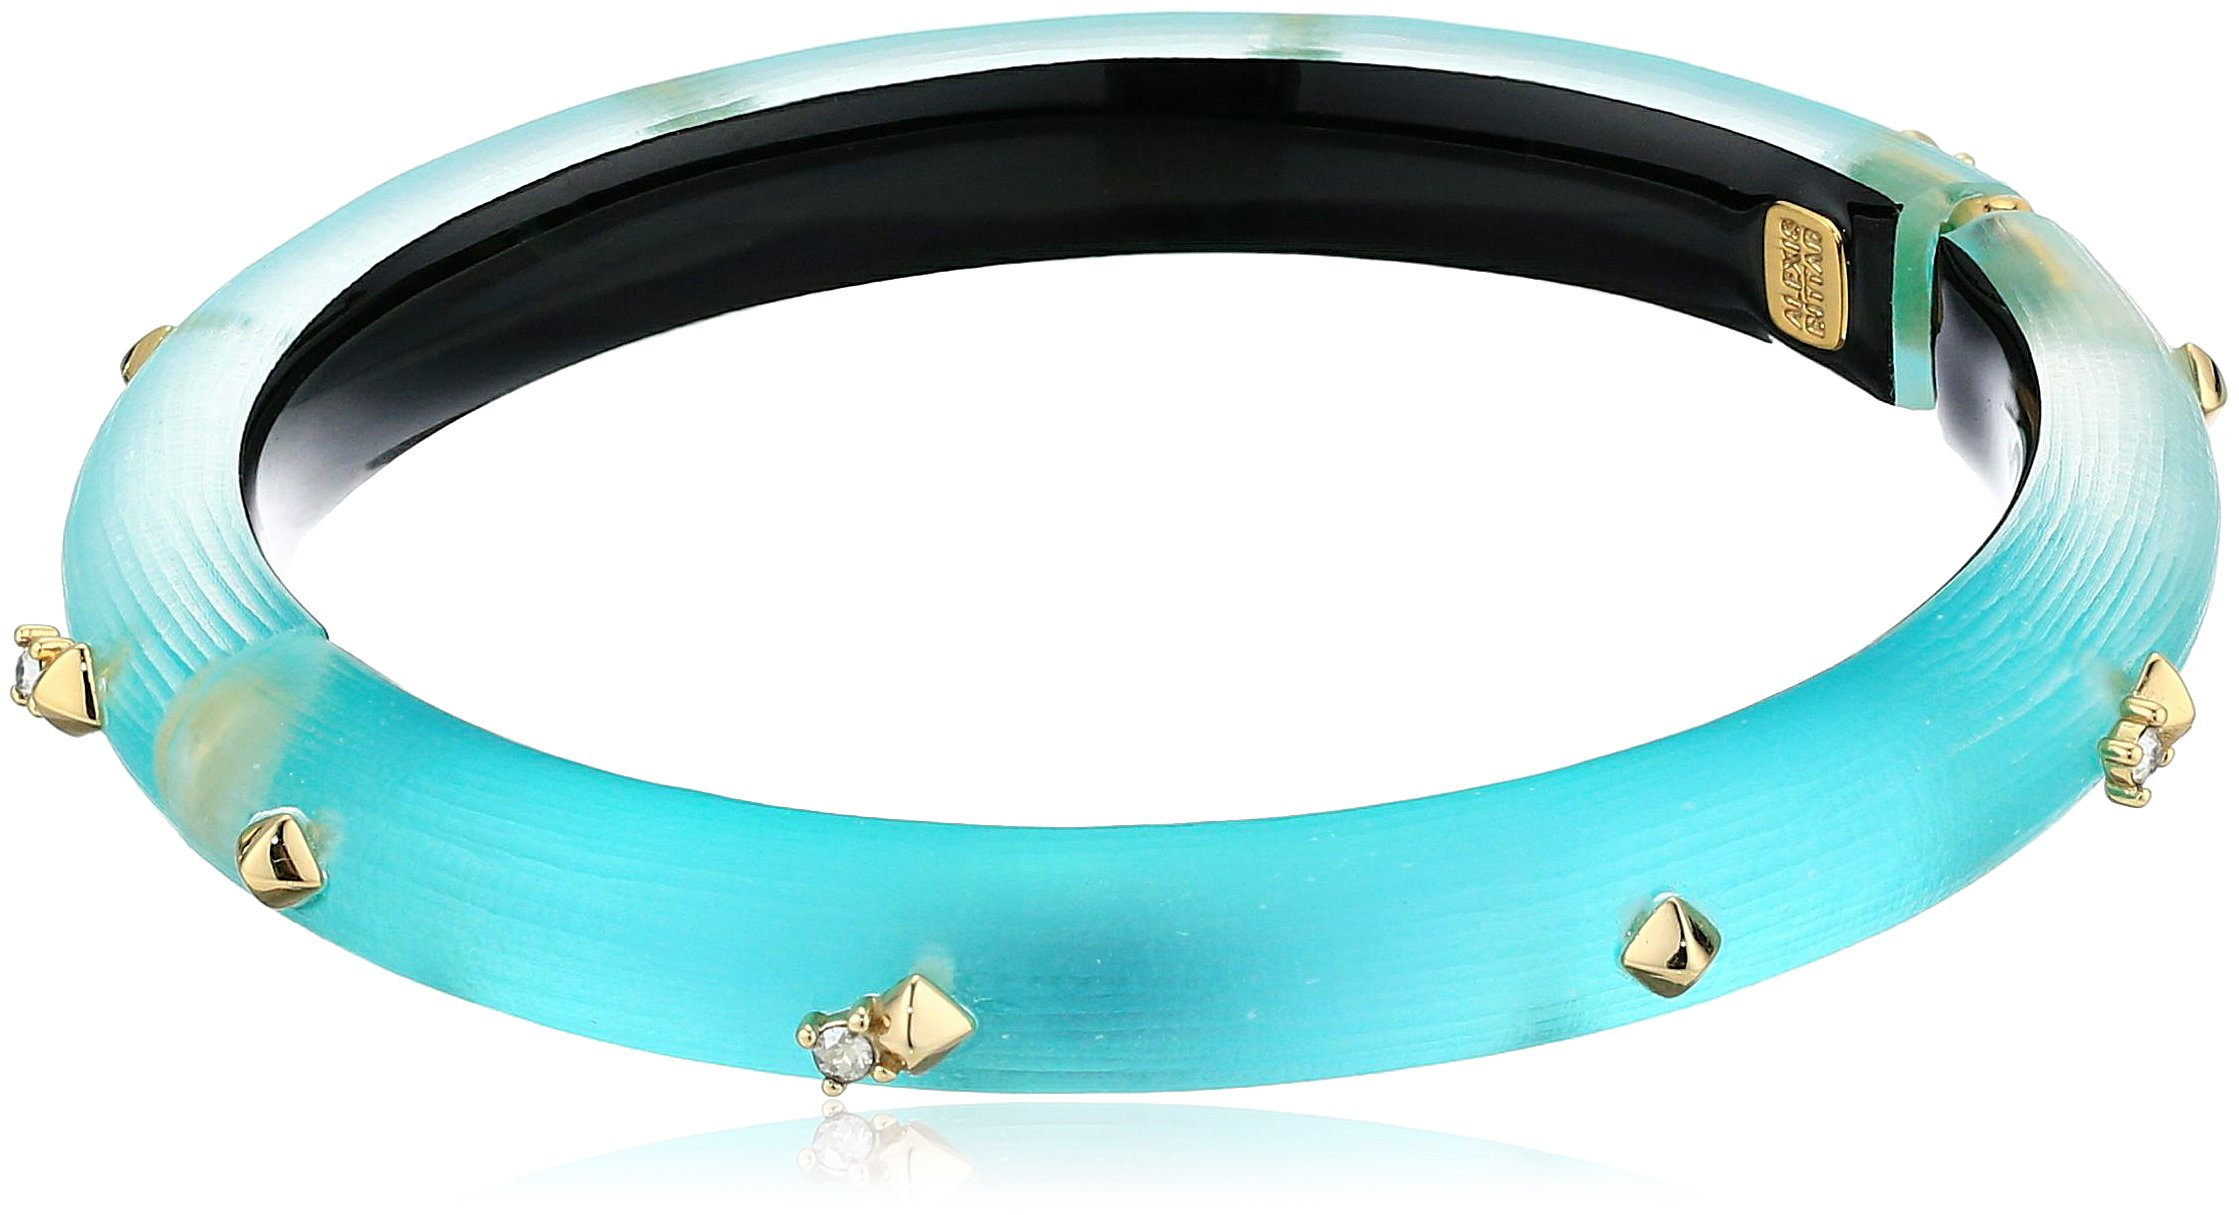 Alexis Bittar Golden Studded Hinge Bracelet, Mint Green, One Size